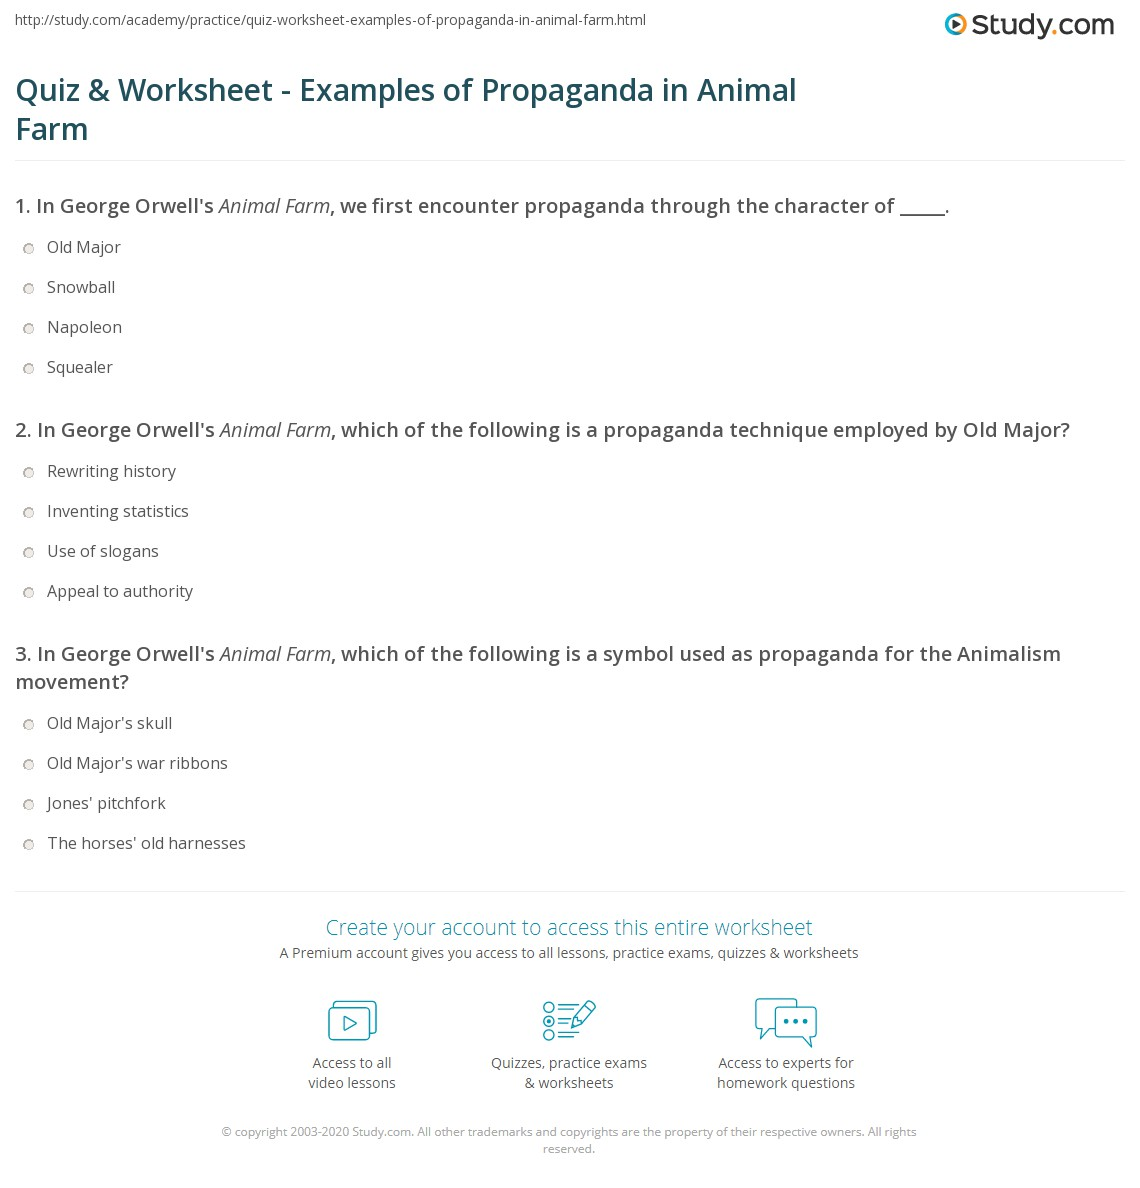 Quiz Worksheet Examples of Propaganda in Animal Farm – Propaganda Worksheets